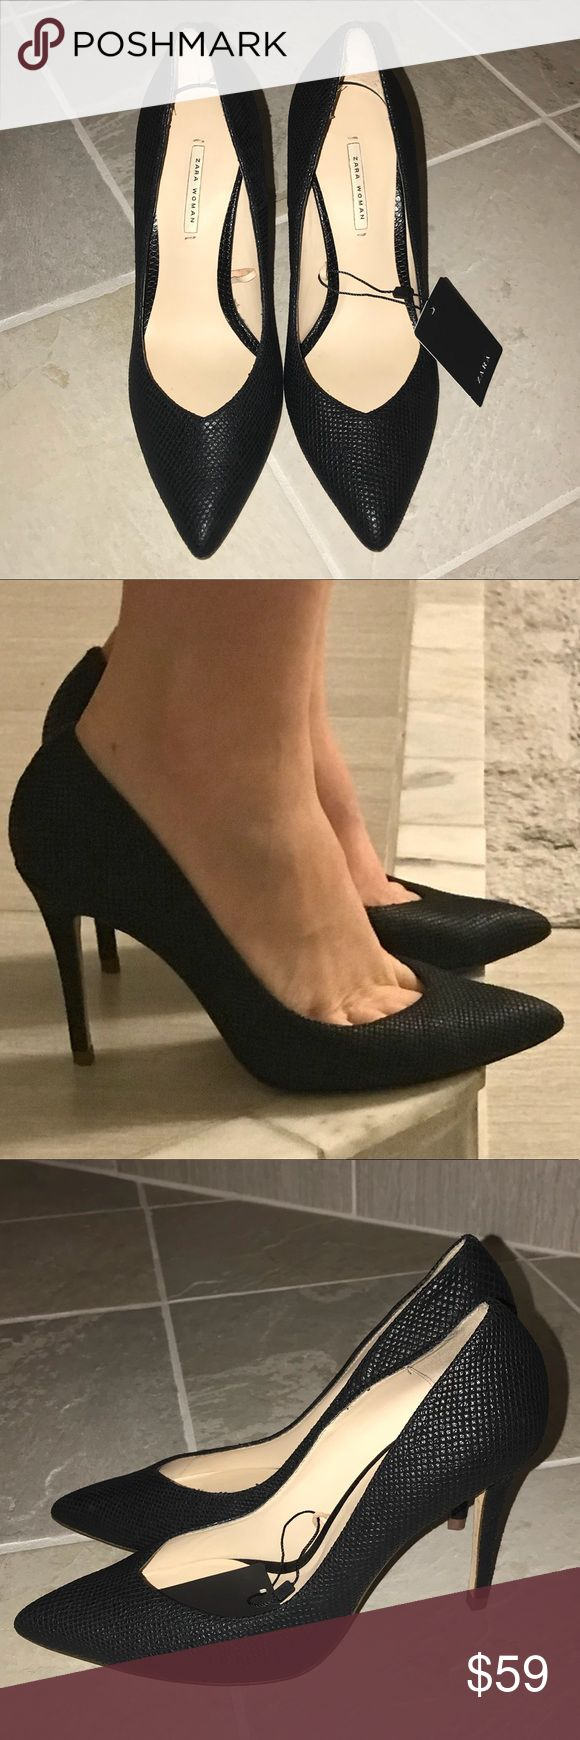 """NEW Zara snakeskin textured matte black pumps Brand new and never worn. Signs of wear to bottom of shoe from trying on in the store. Textured snake skin women's heels in size 8. Matte black. These are a true size 8. I typically wear a 8-8.5 in heels and these are a bit snug on me. About a 4"""" heel but seem comfortable enough to wear to work or a night out. Photos taken with and without flash to show texture Tags: free people Anthropologie ASOS lulus missguided agaci Zara river island wild fox…"""